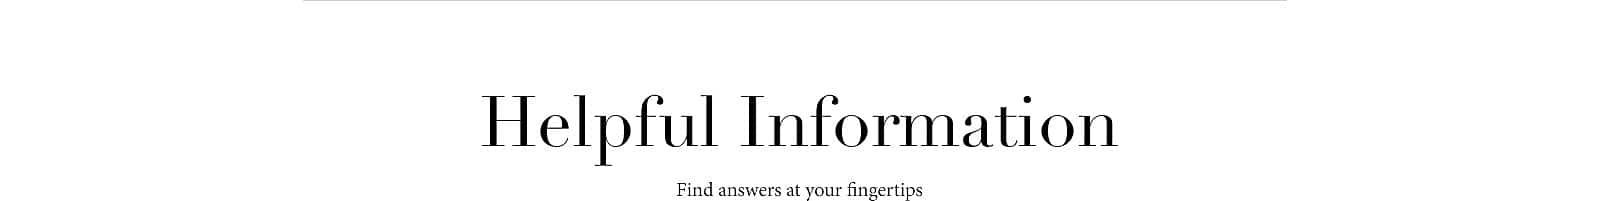 Helpful Information - Find Answers at your fingertips.